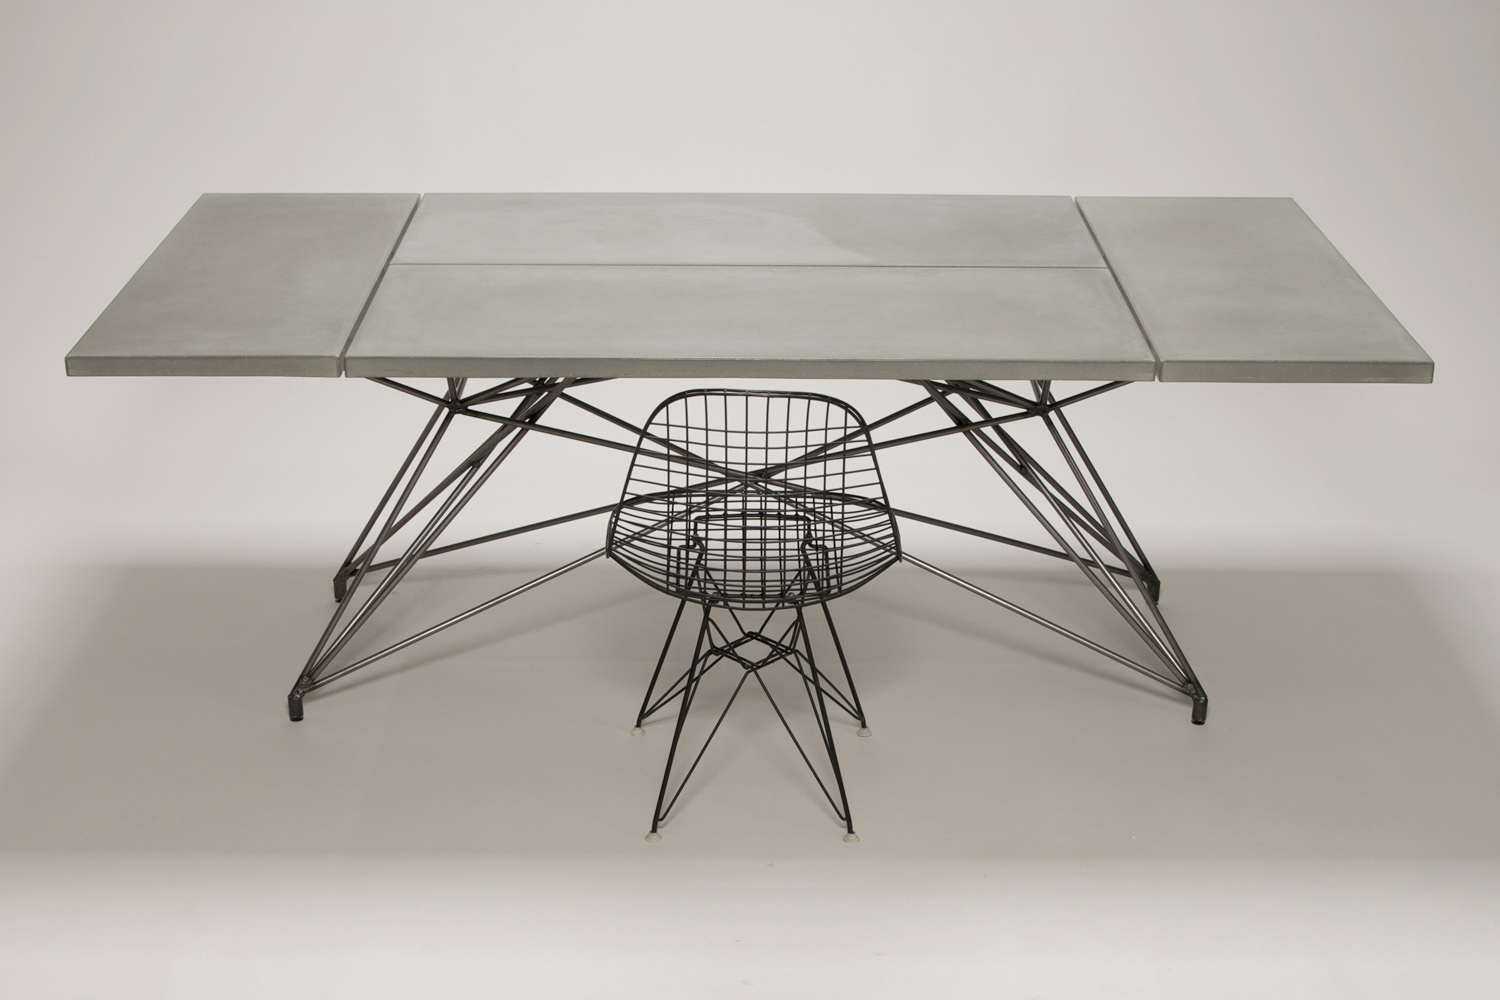 Mid century modern custom concrete and steel table